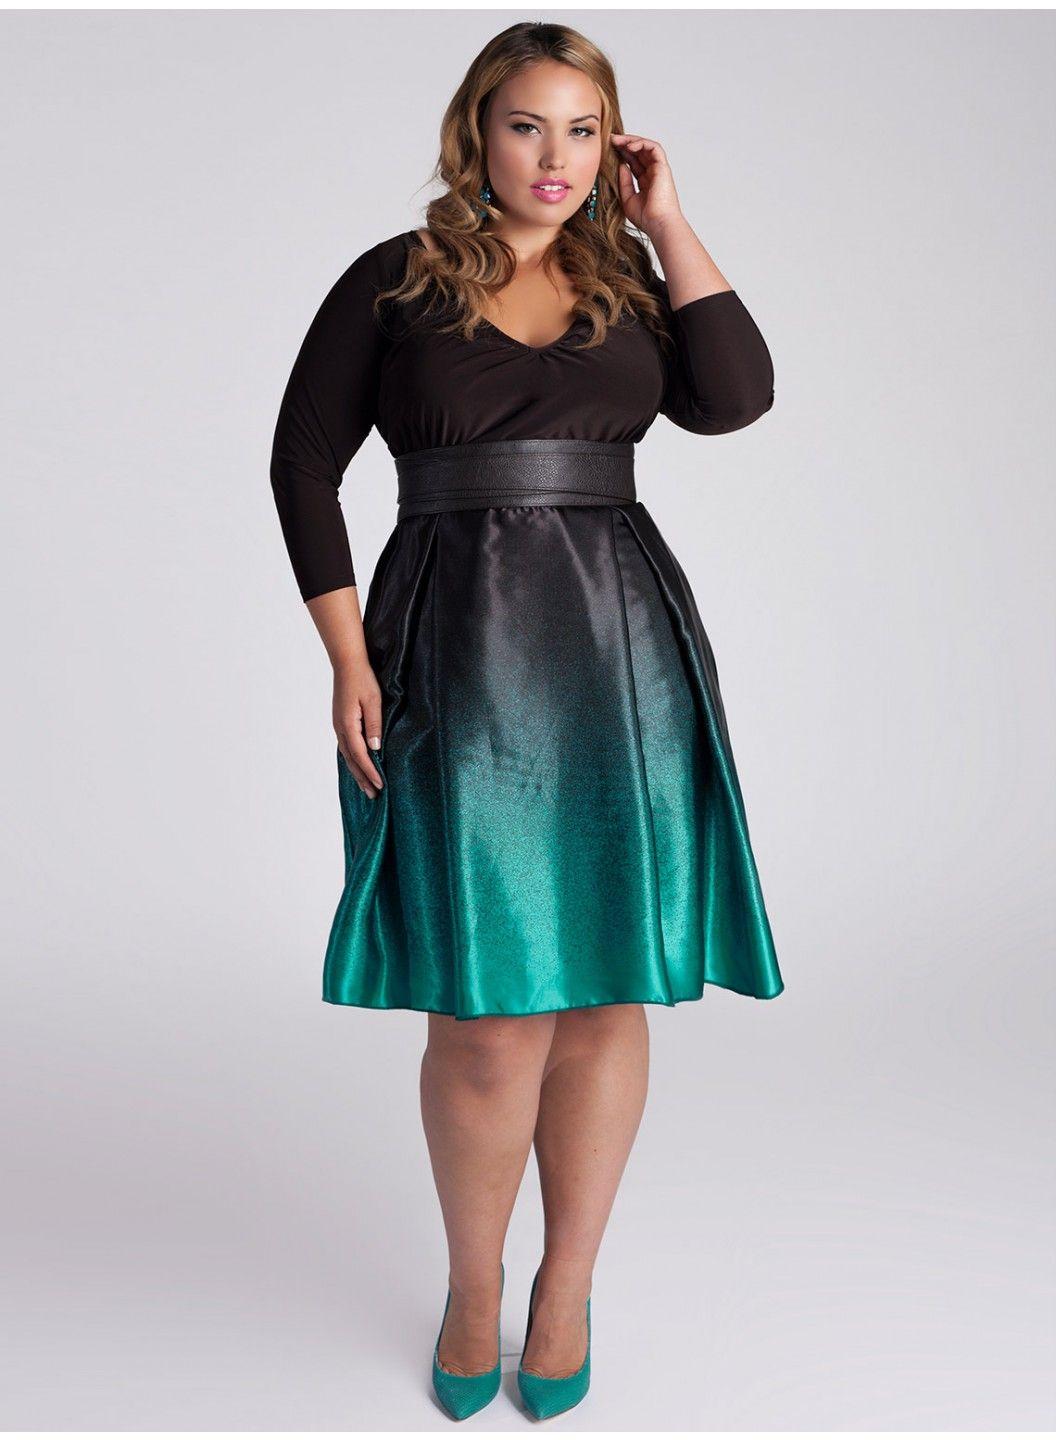 Drew plus size dress outfits for play pinterest for Wedding guest dresses size 14